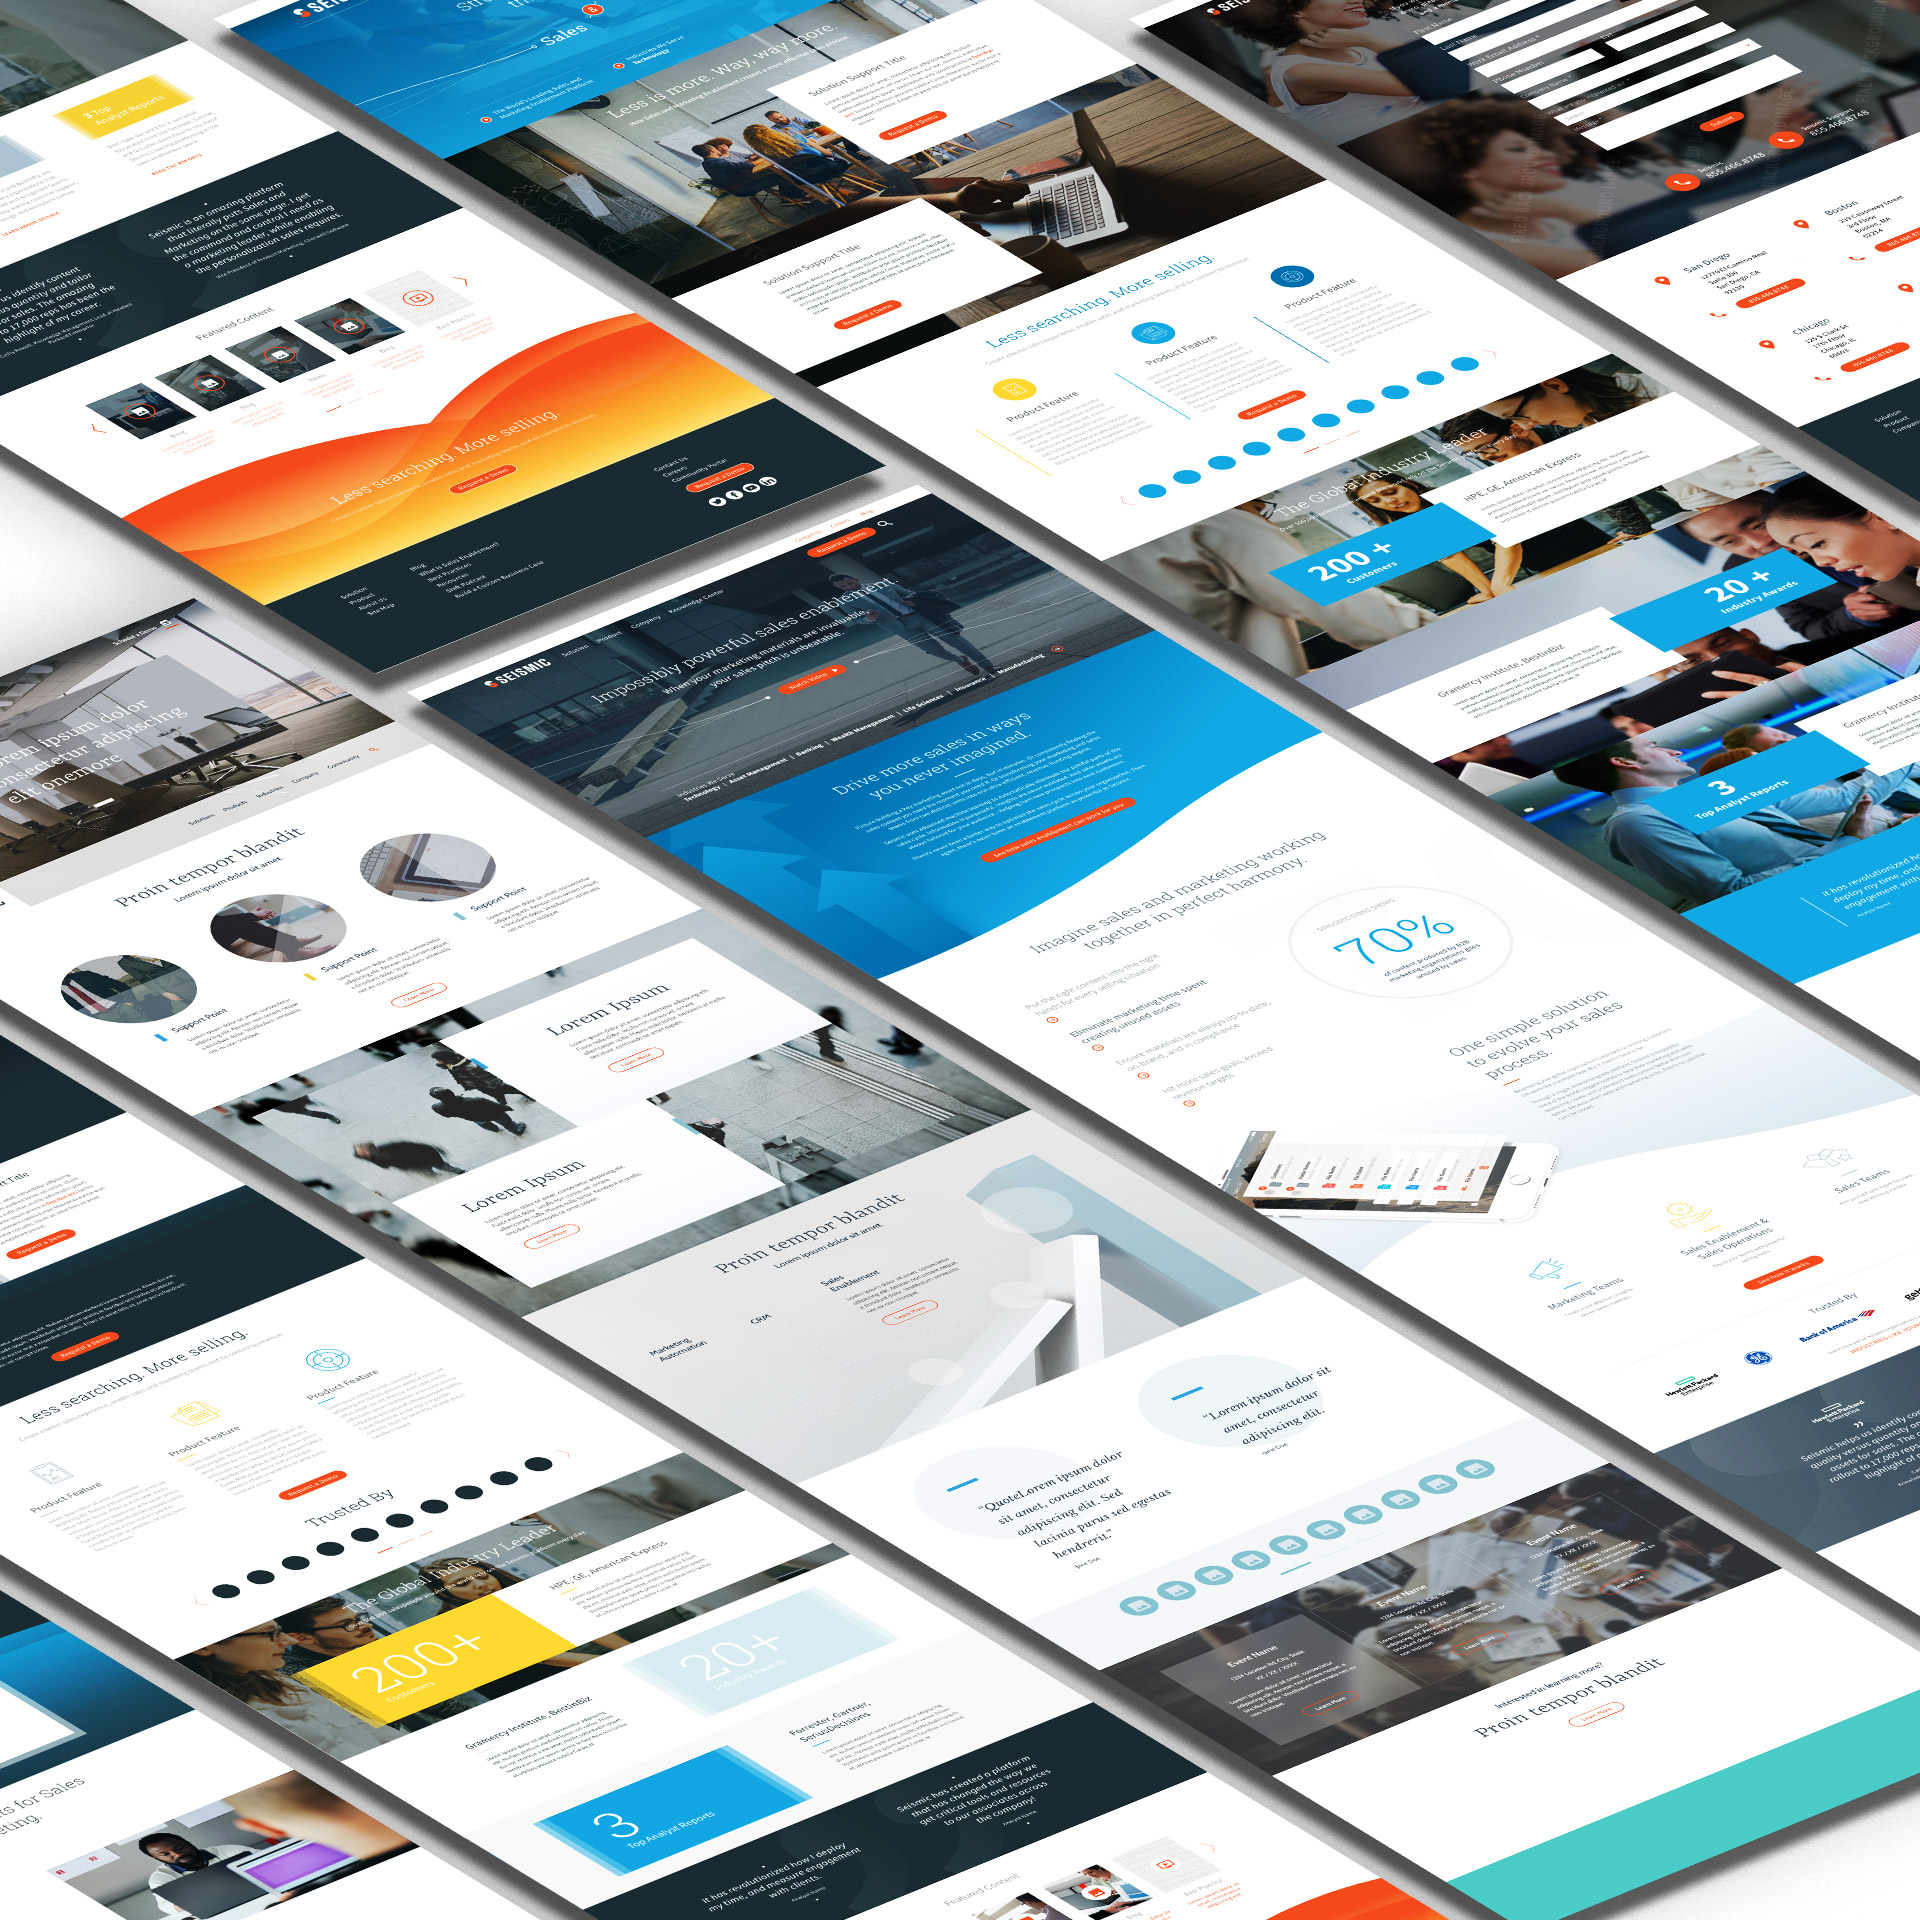 Seismic website conceptual design exploration